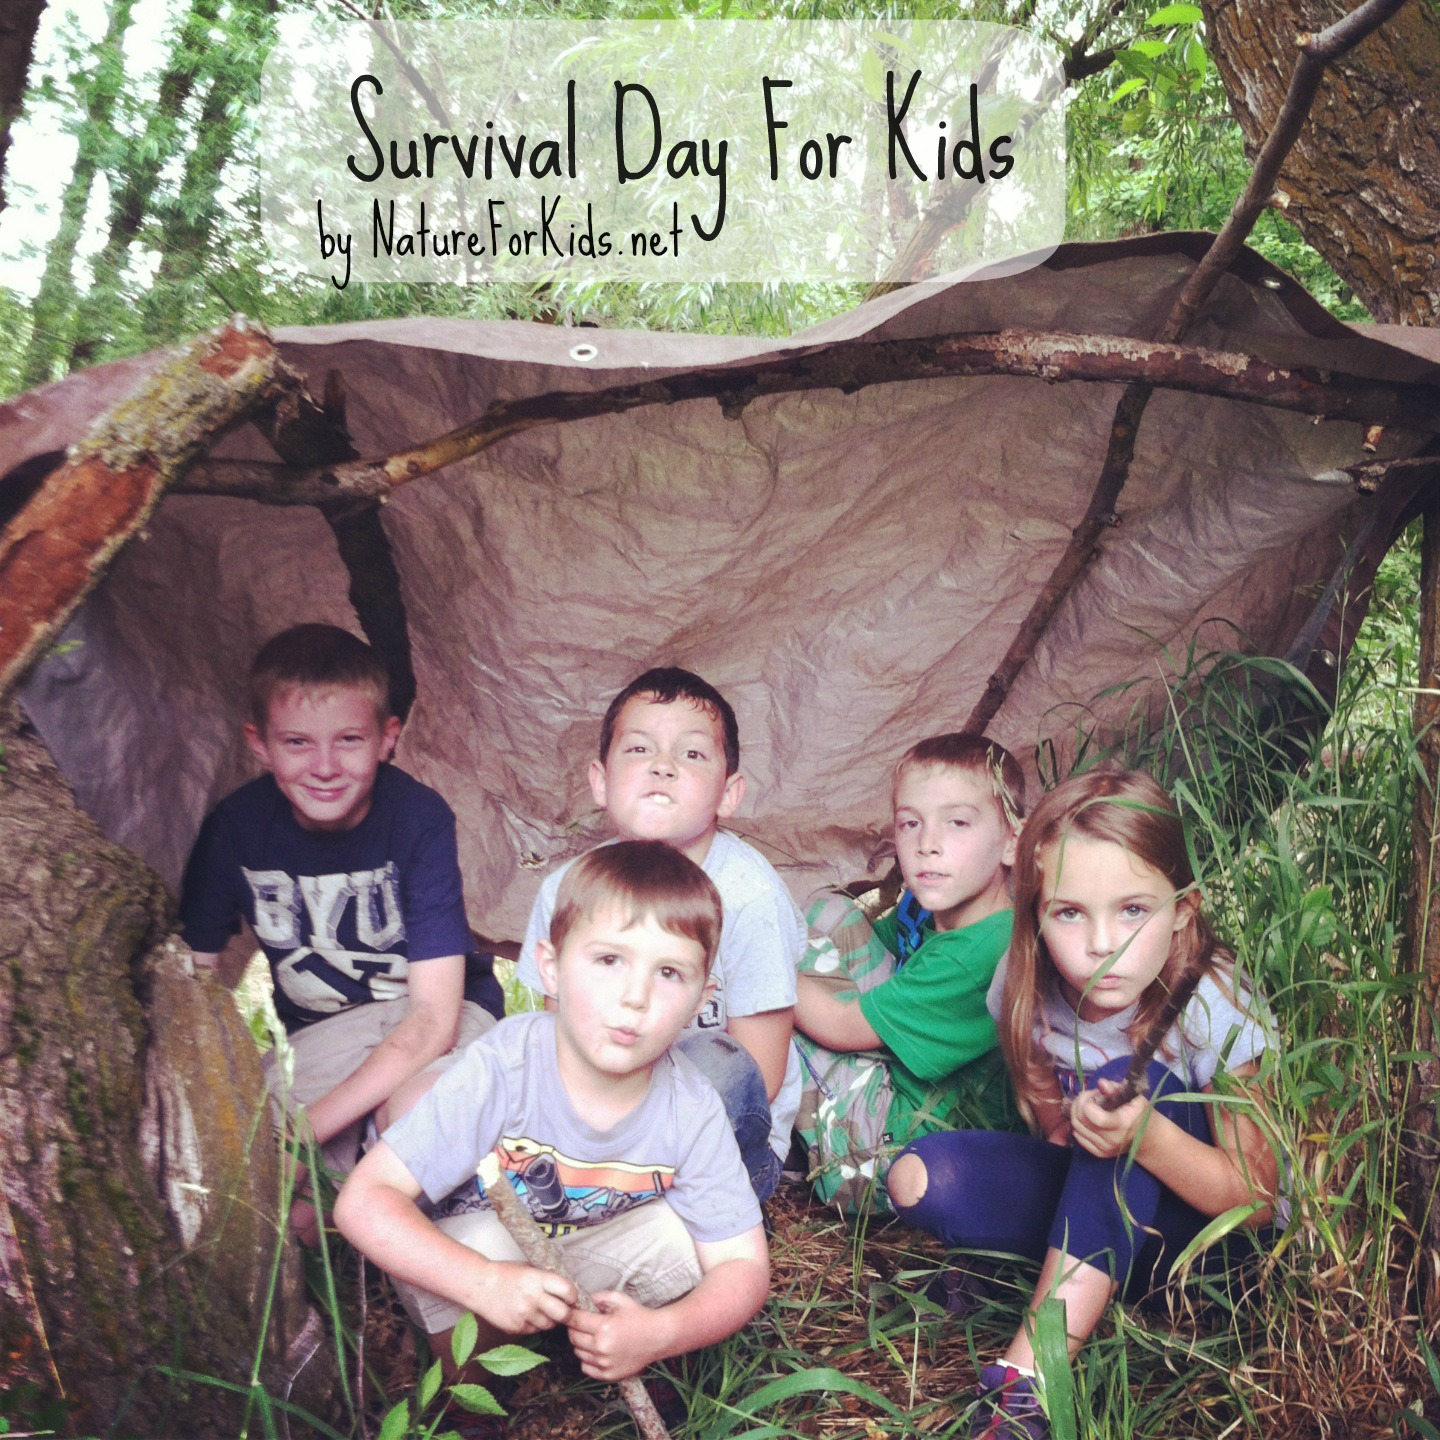 survival-day-for-kids.jpg